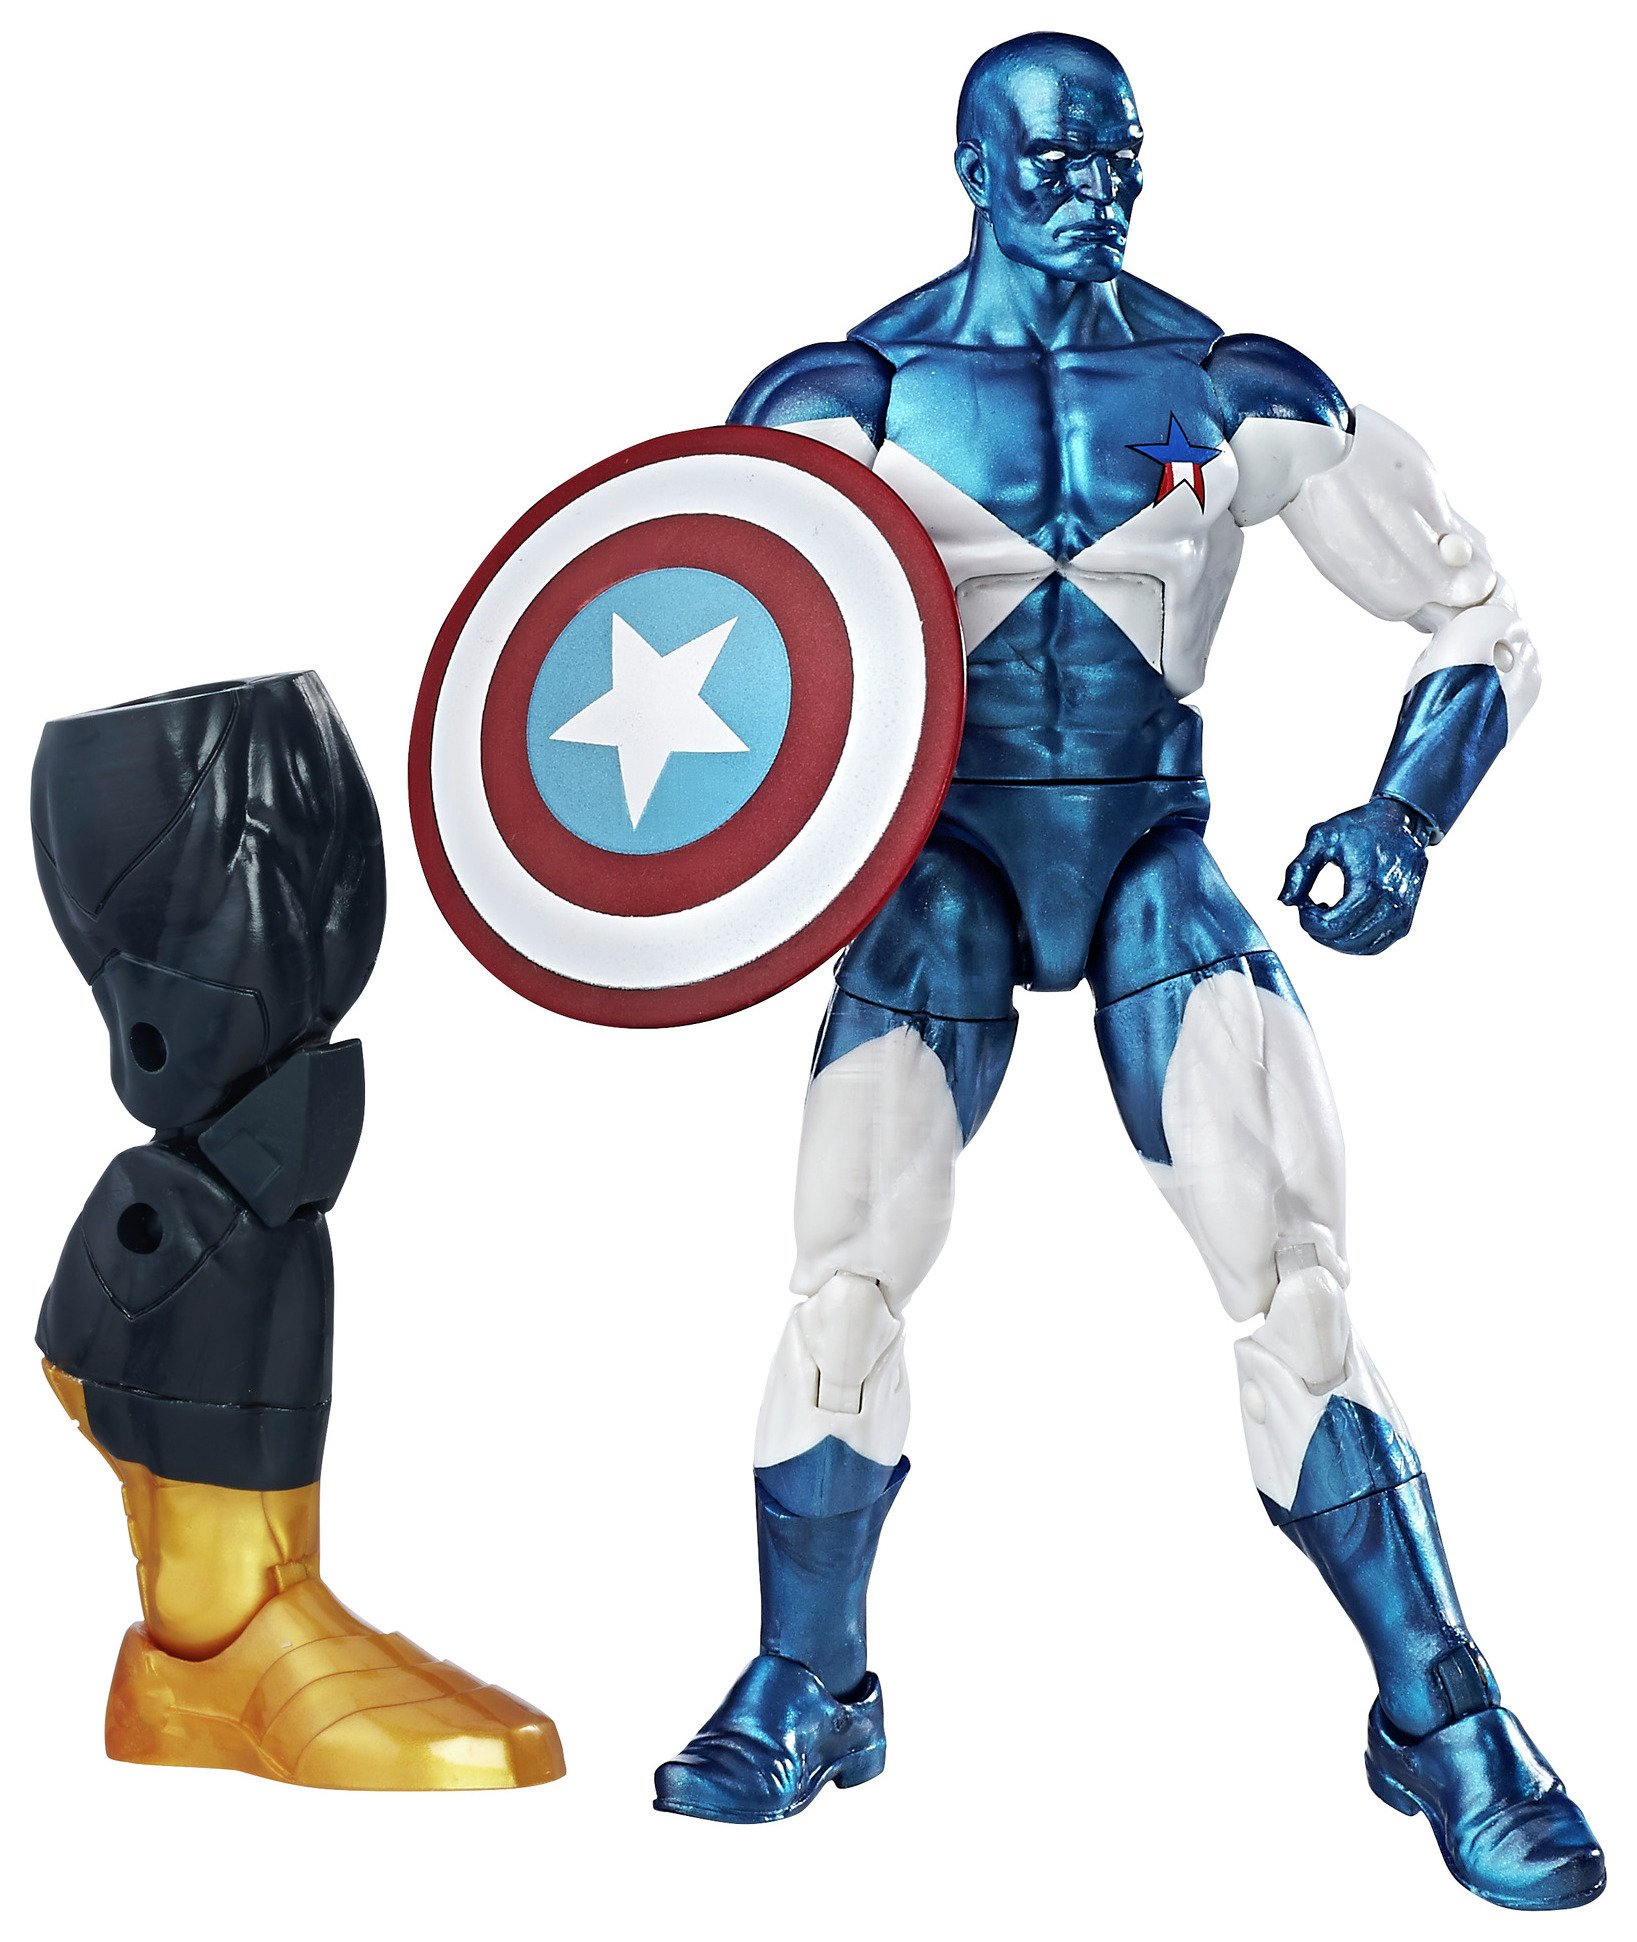 Image of Marvel Guardians of the Galaxy 6-inch Legends Vance Astro